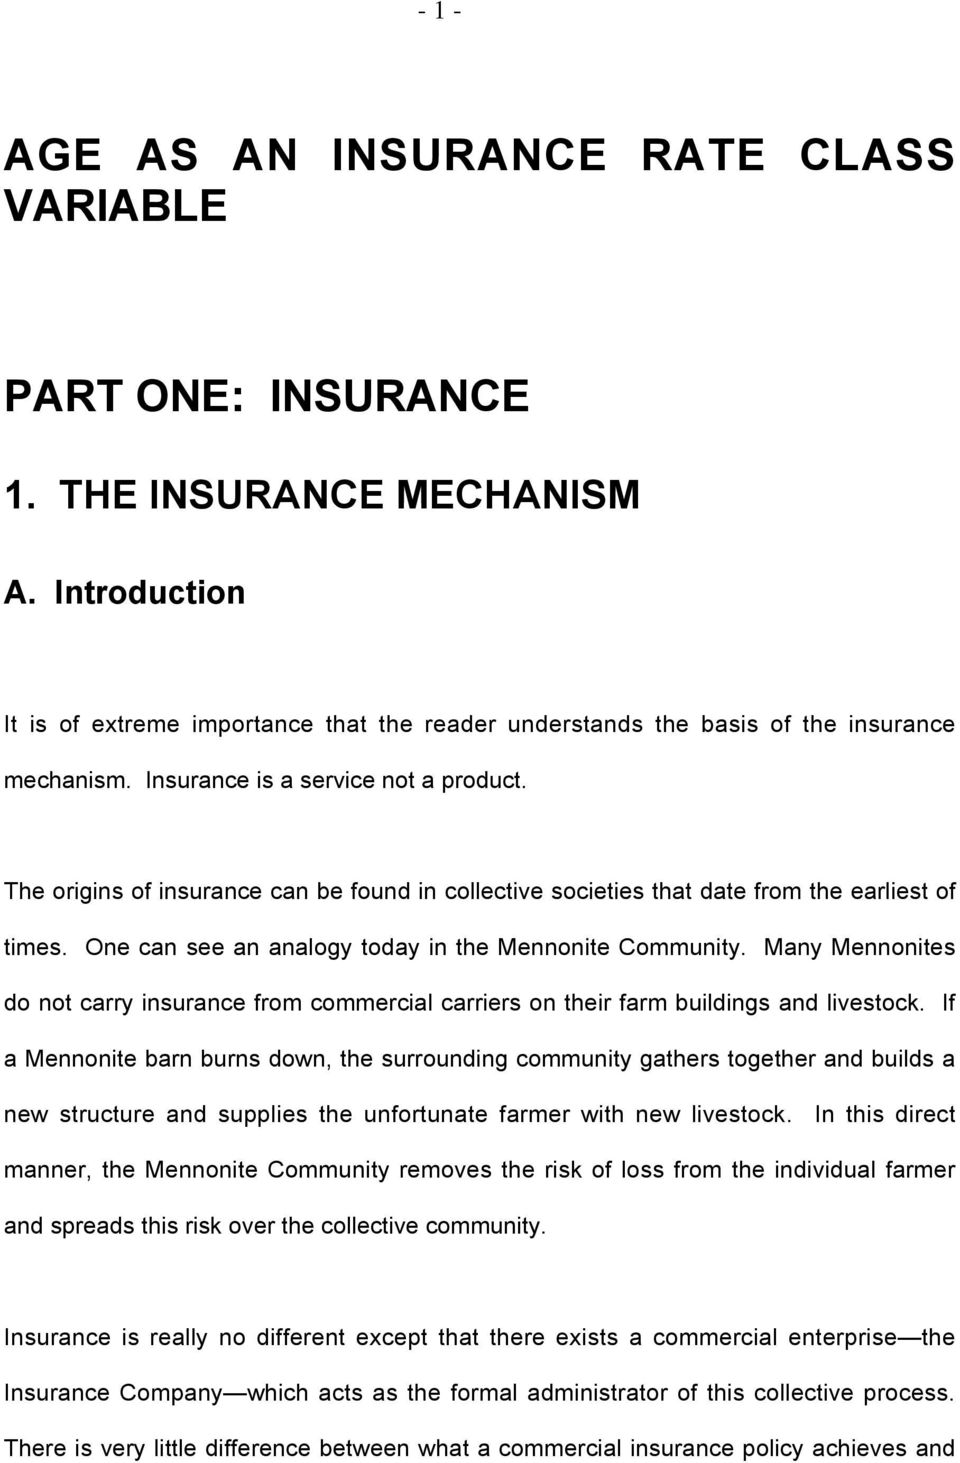 The origins of insurance can be found in collective societies that date from the earliest of times. One can see an analogy today in the Mennonite Community.